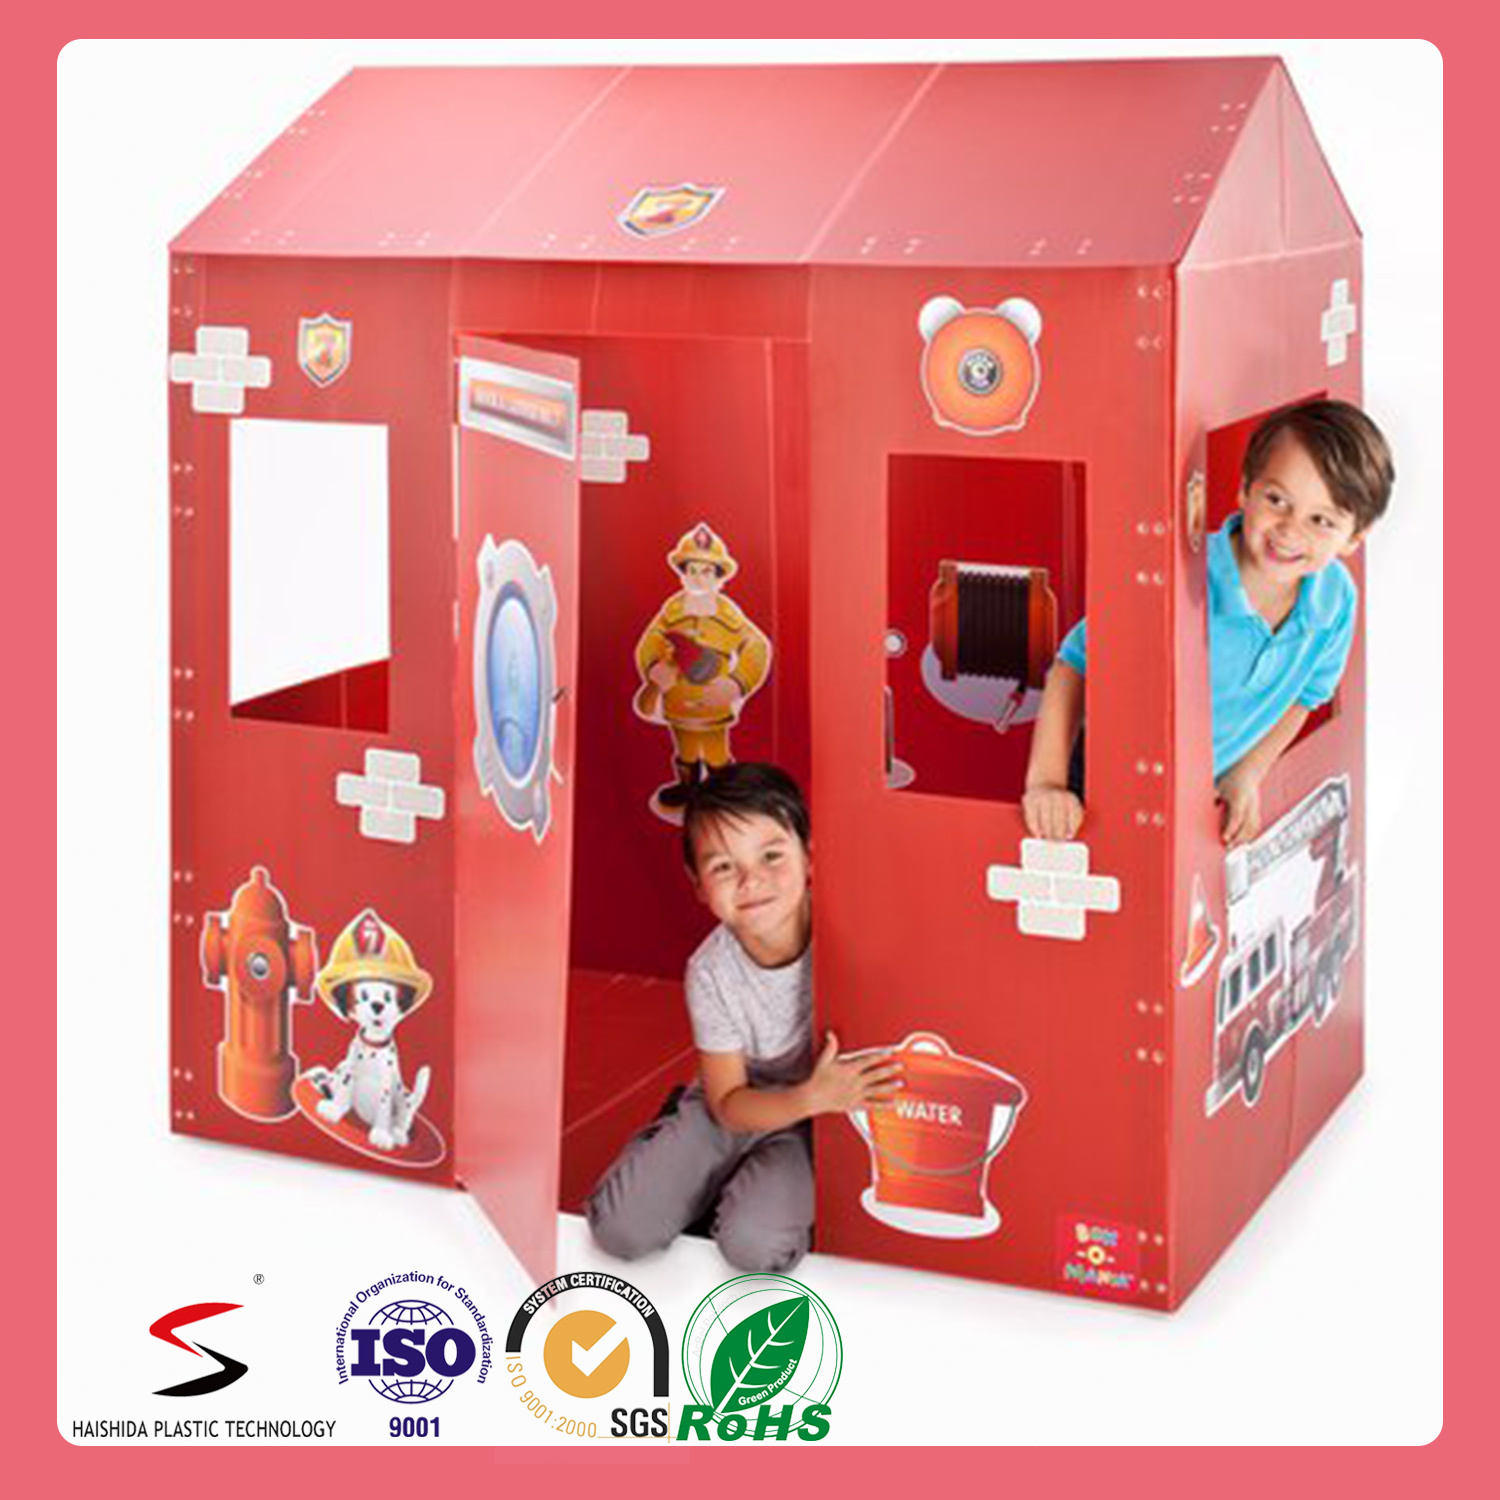 New Design Custom Recyclable Playhouse Kids Playhouse